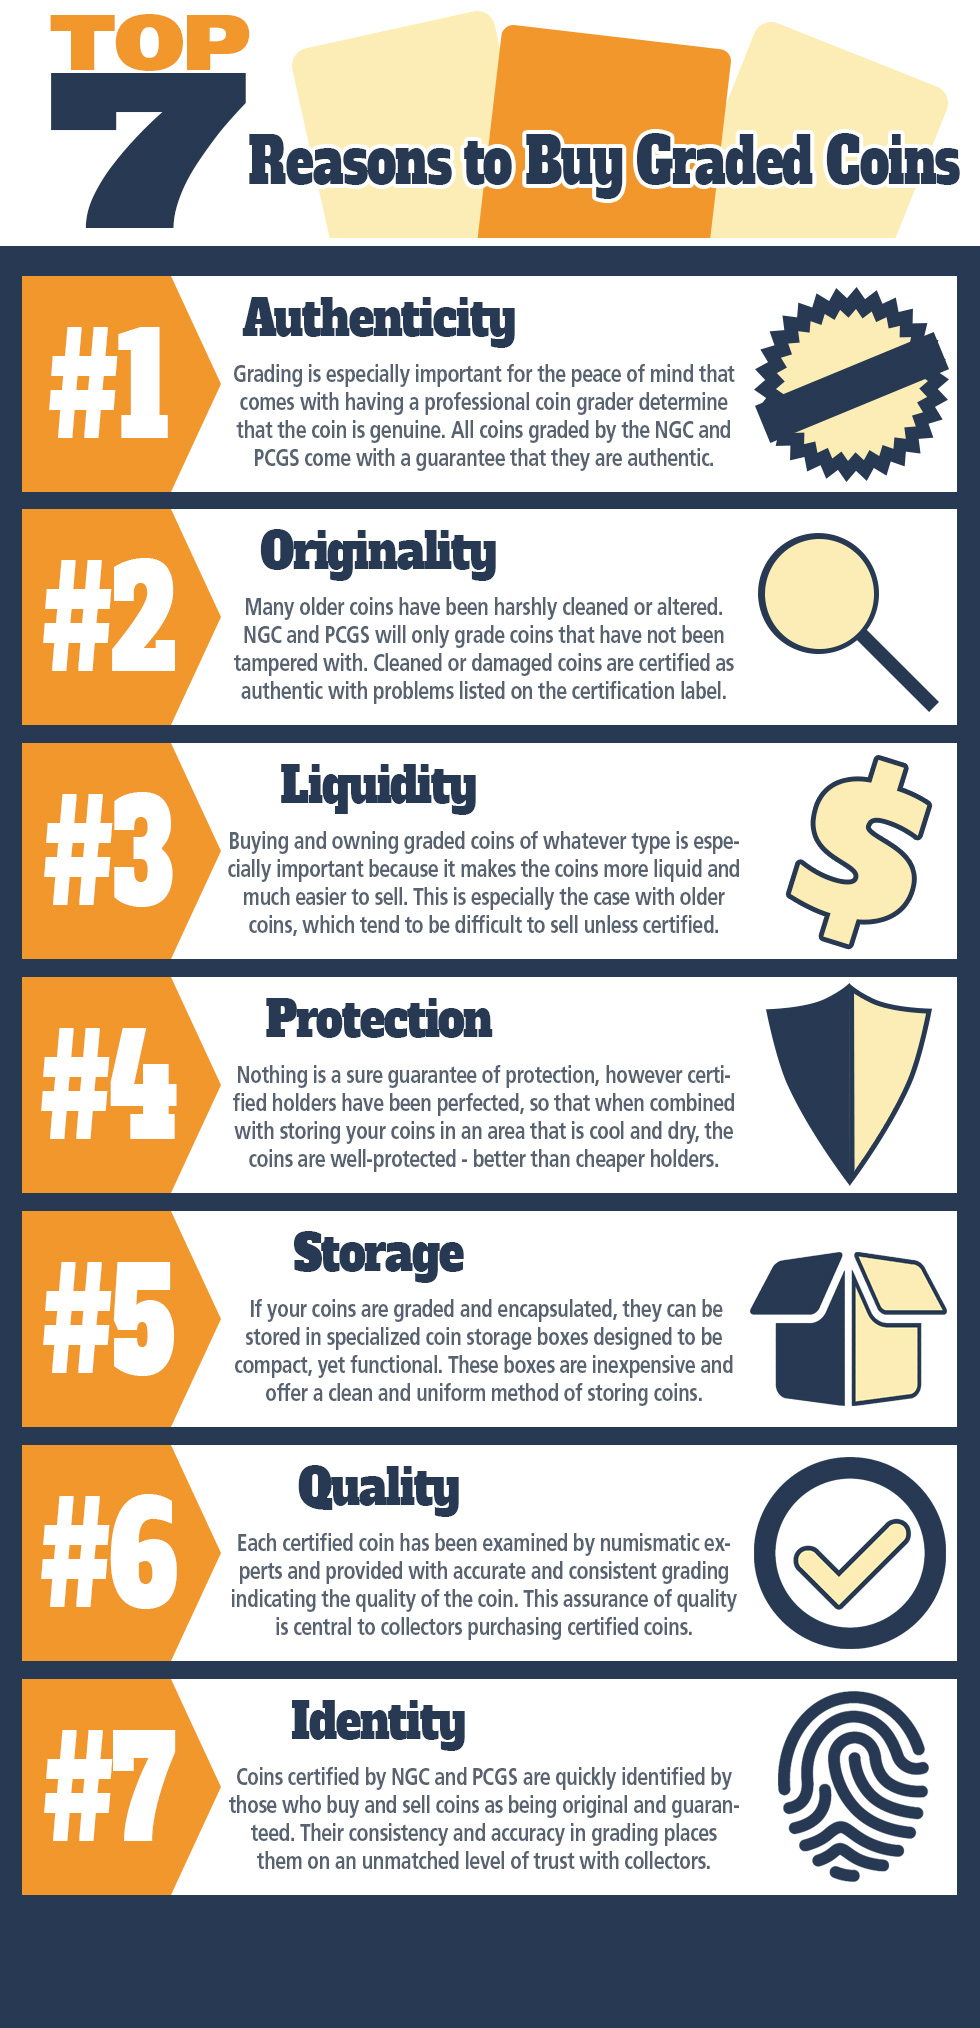 Top 7 Reasons to Buy Graded Coins Info-Graphic